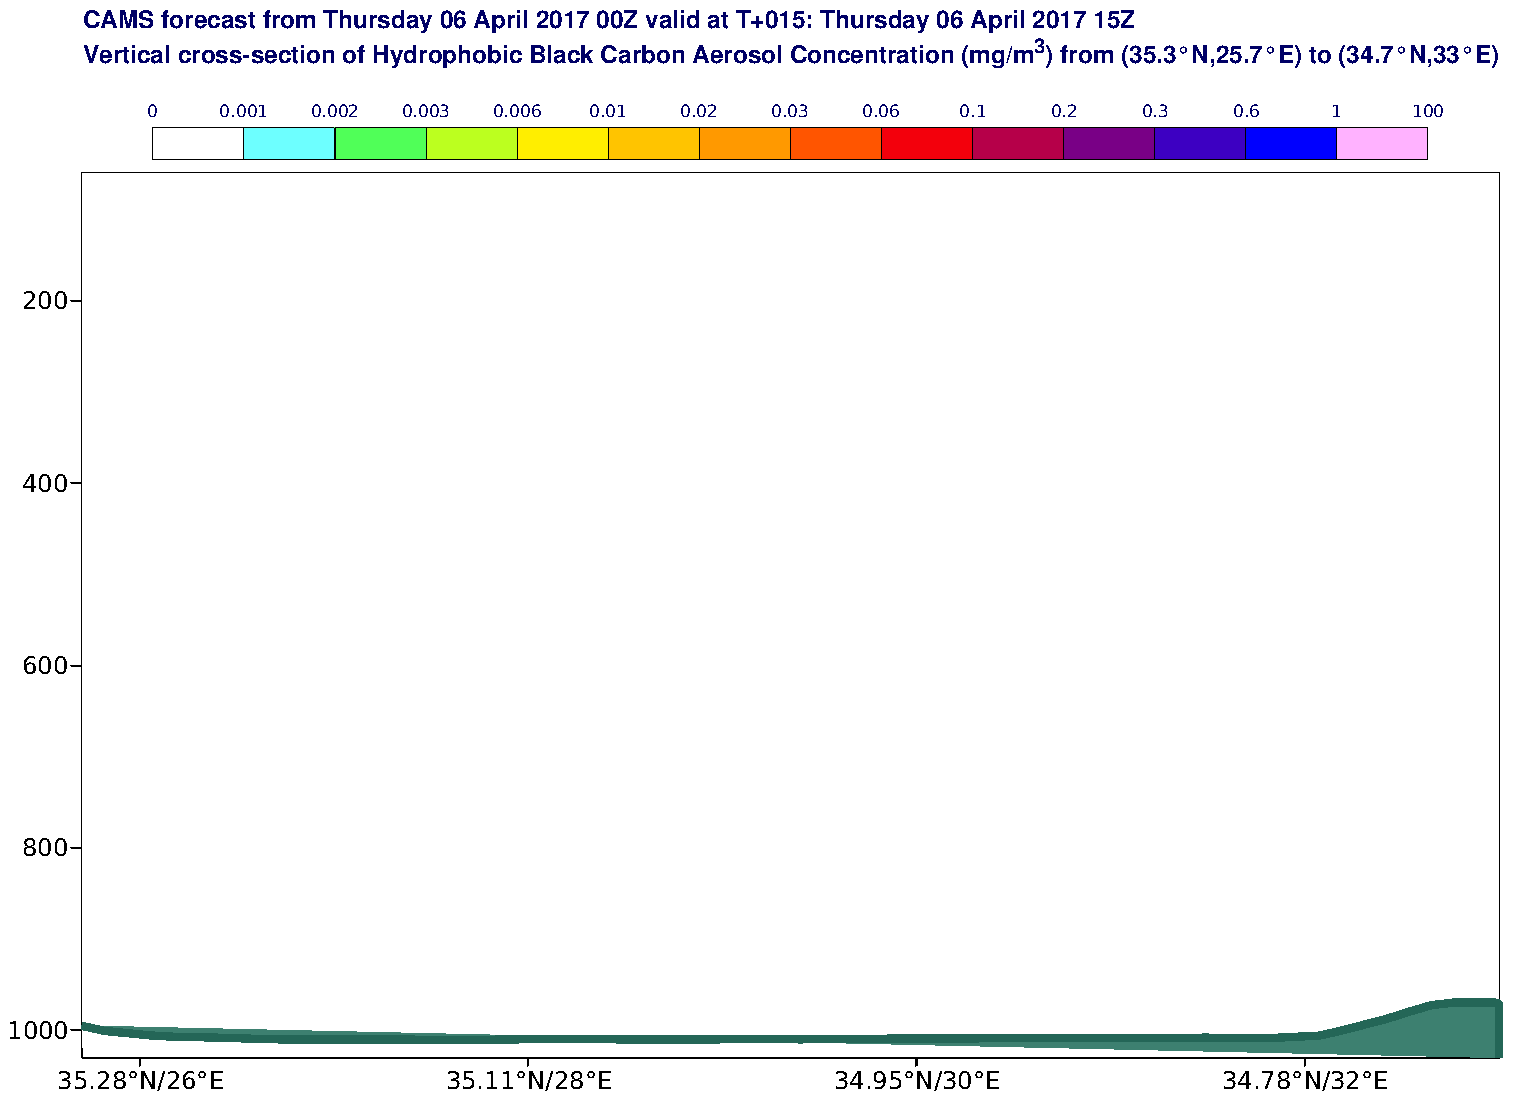 Vertical cross-section of Hydrophobic Black Carbon Aerosol Concentration (mg/m3) valid at T15 - 2017-04-06 15:00